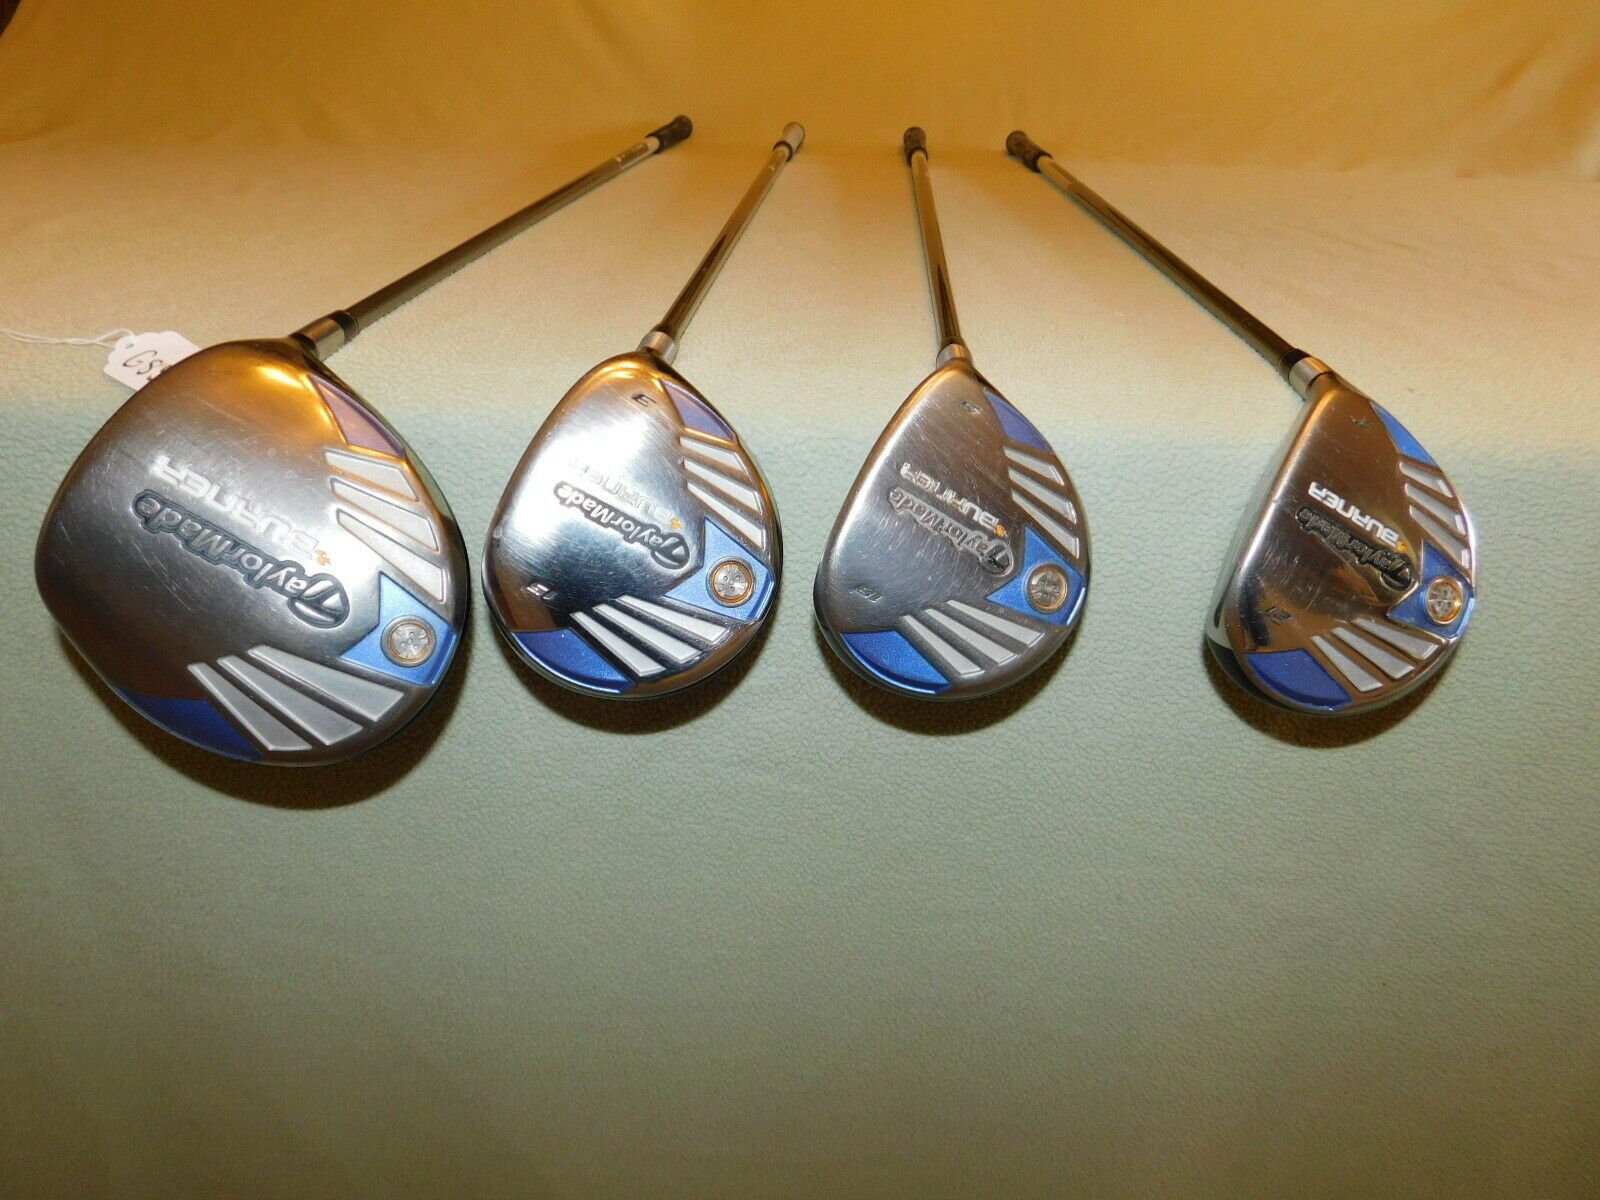 2007  Ladies Wohombres Taylor Made Burner Driver, 3 Wood, 5 Wood & 7 Wood   G859  alto descuento